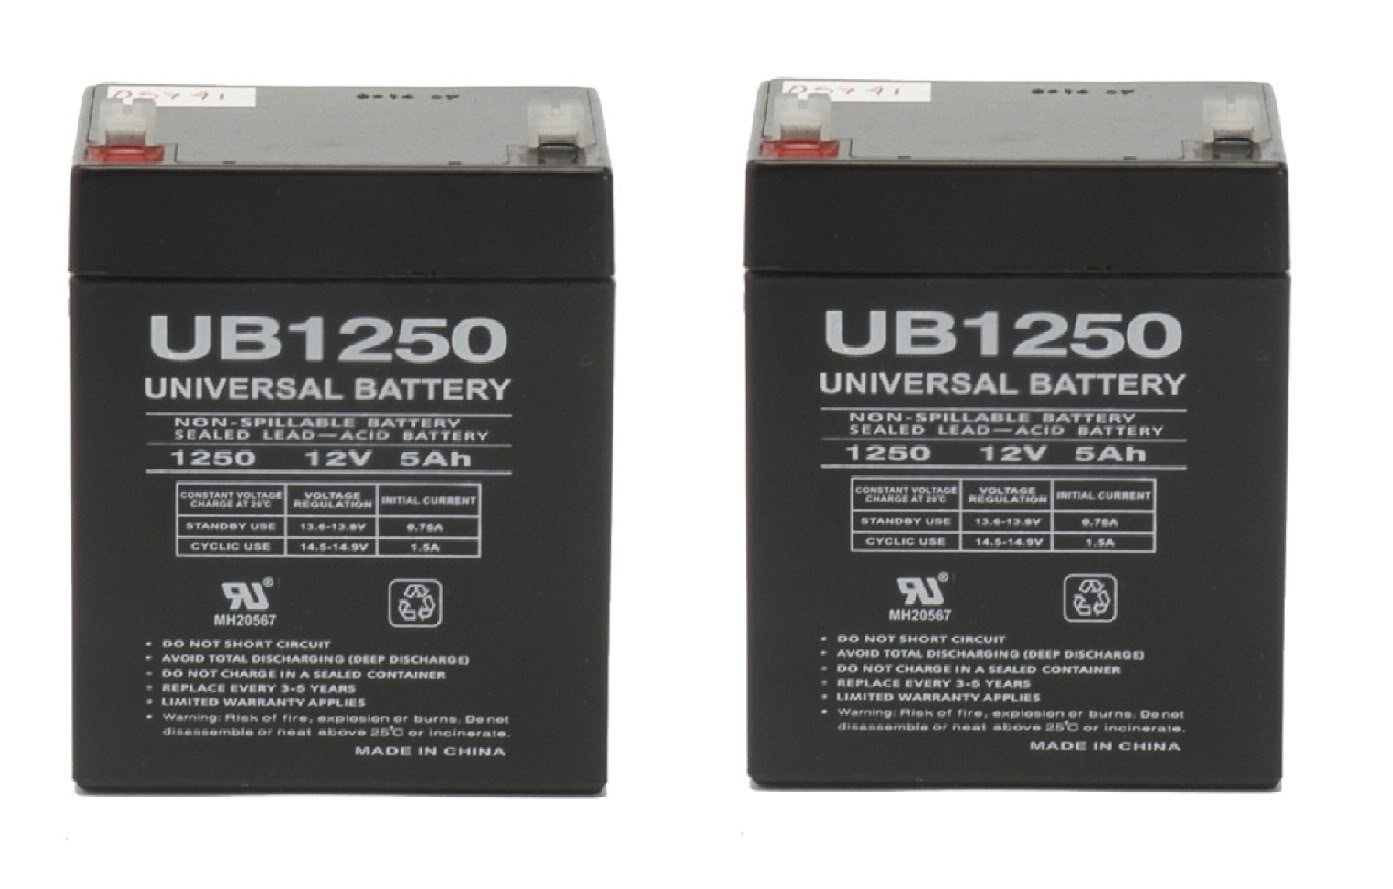 Razor E100 Electric Scooter battery 12V 5AH - 2 Pack - UPG Brand (With Flashlight Bundle)